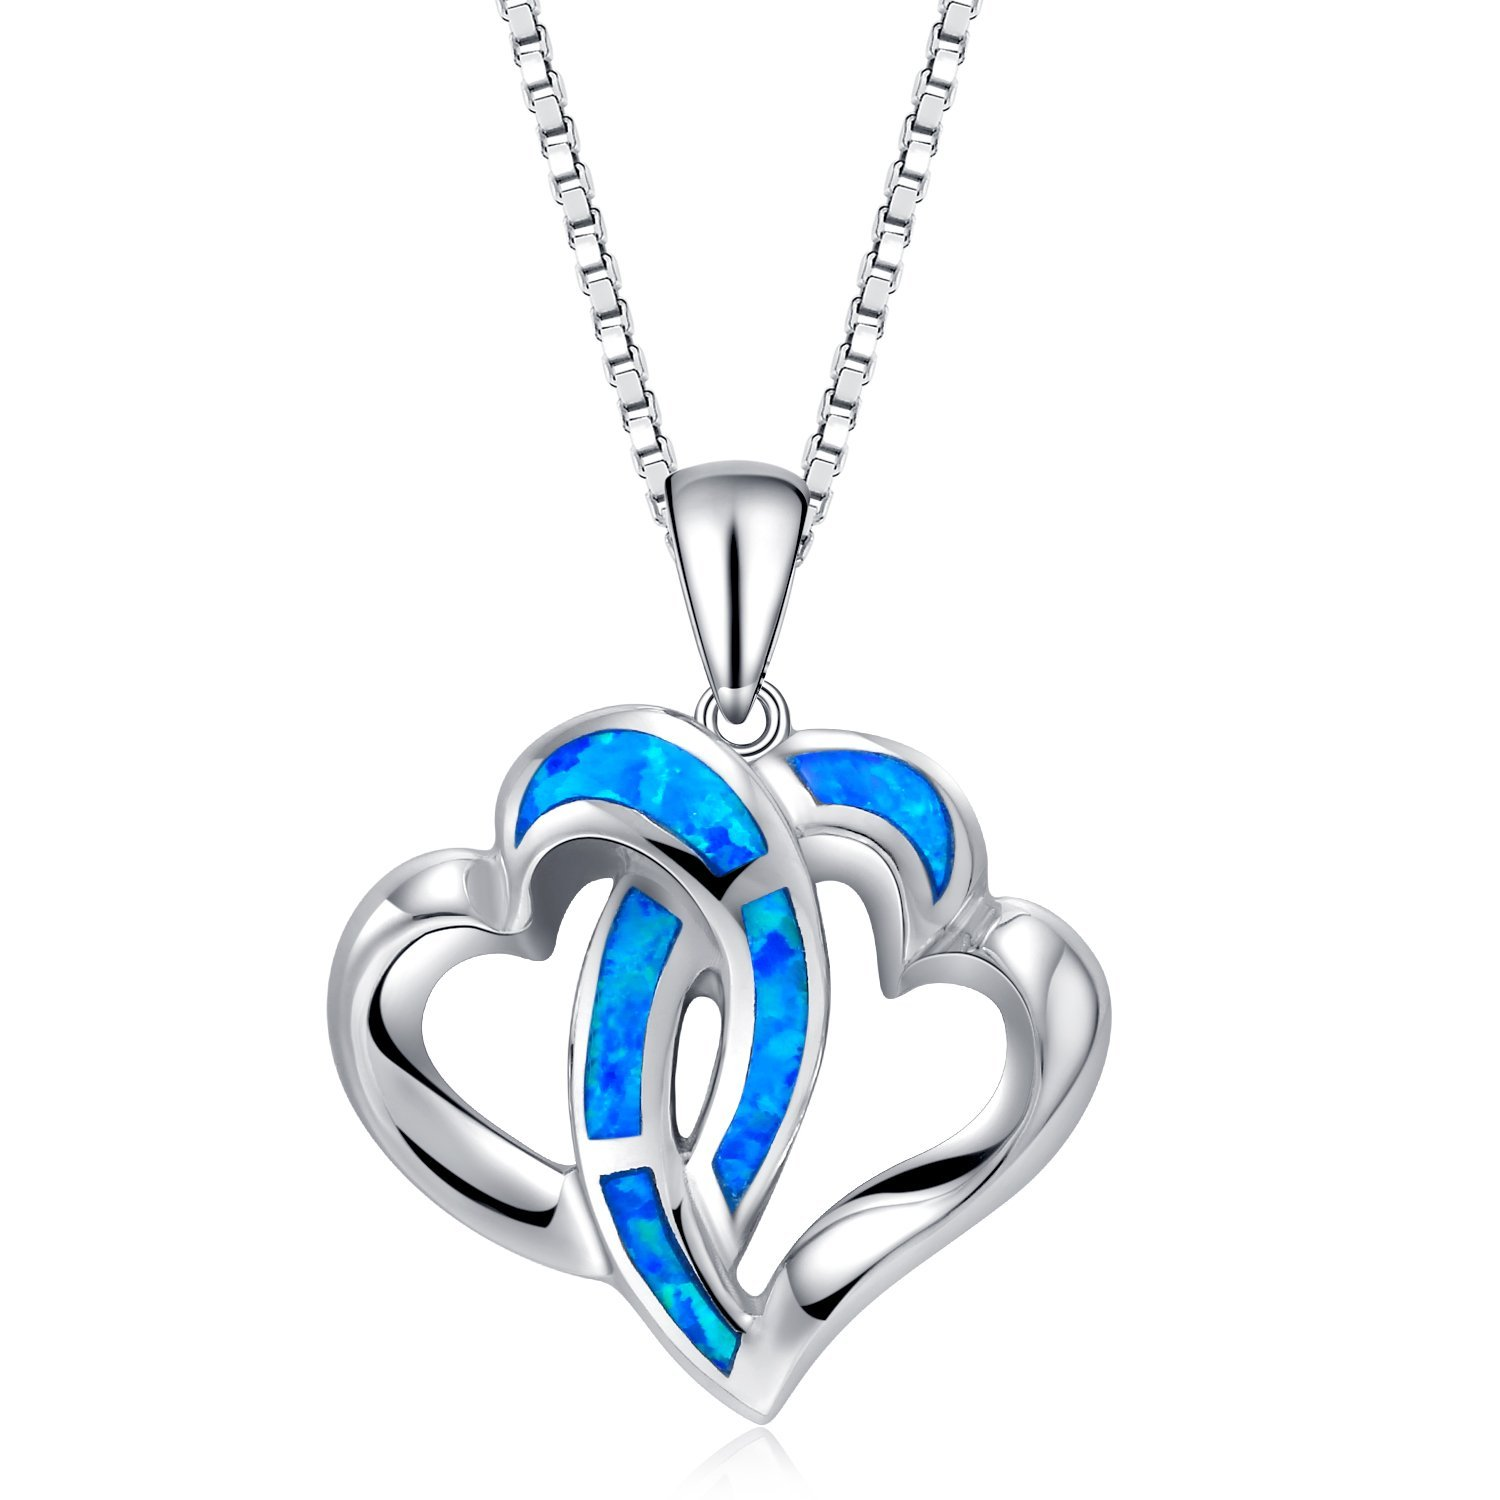 zt-i-love-you-necklace_expensive-gifts